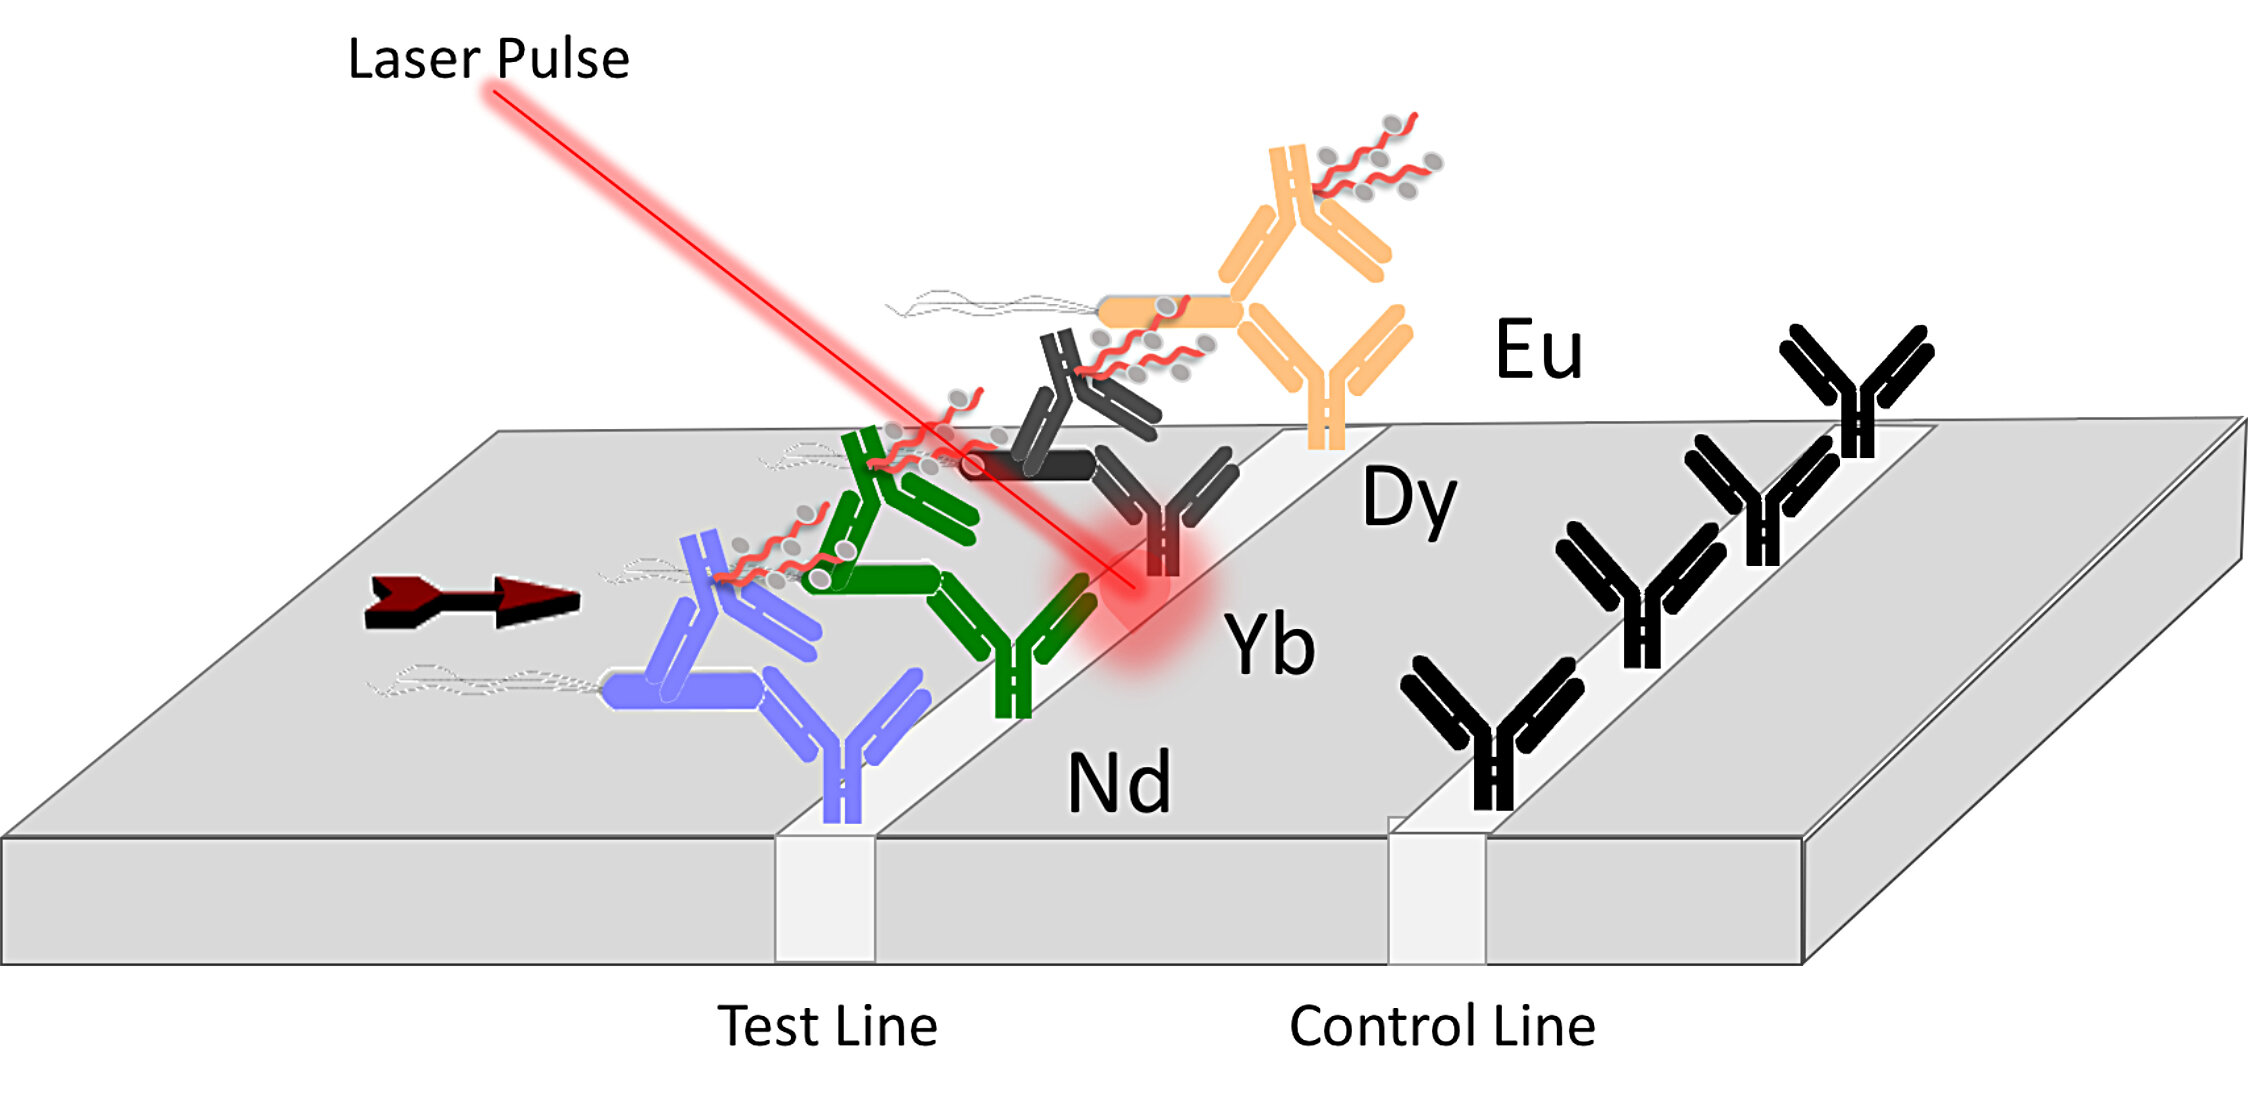 New technology for pathogen detection driven by lasers